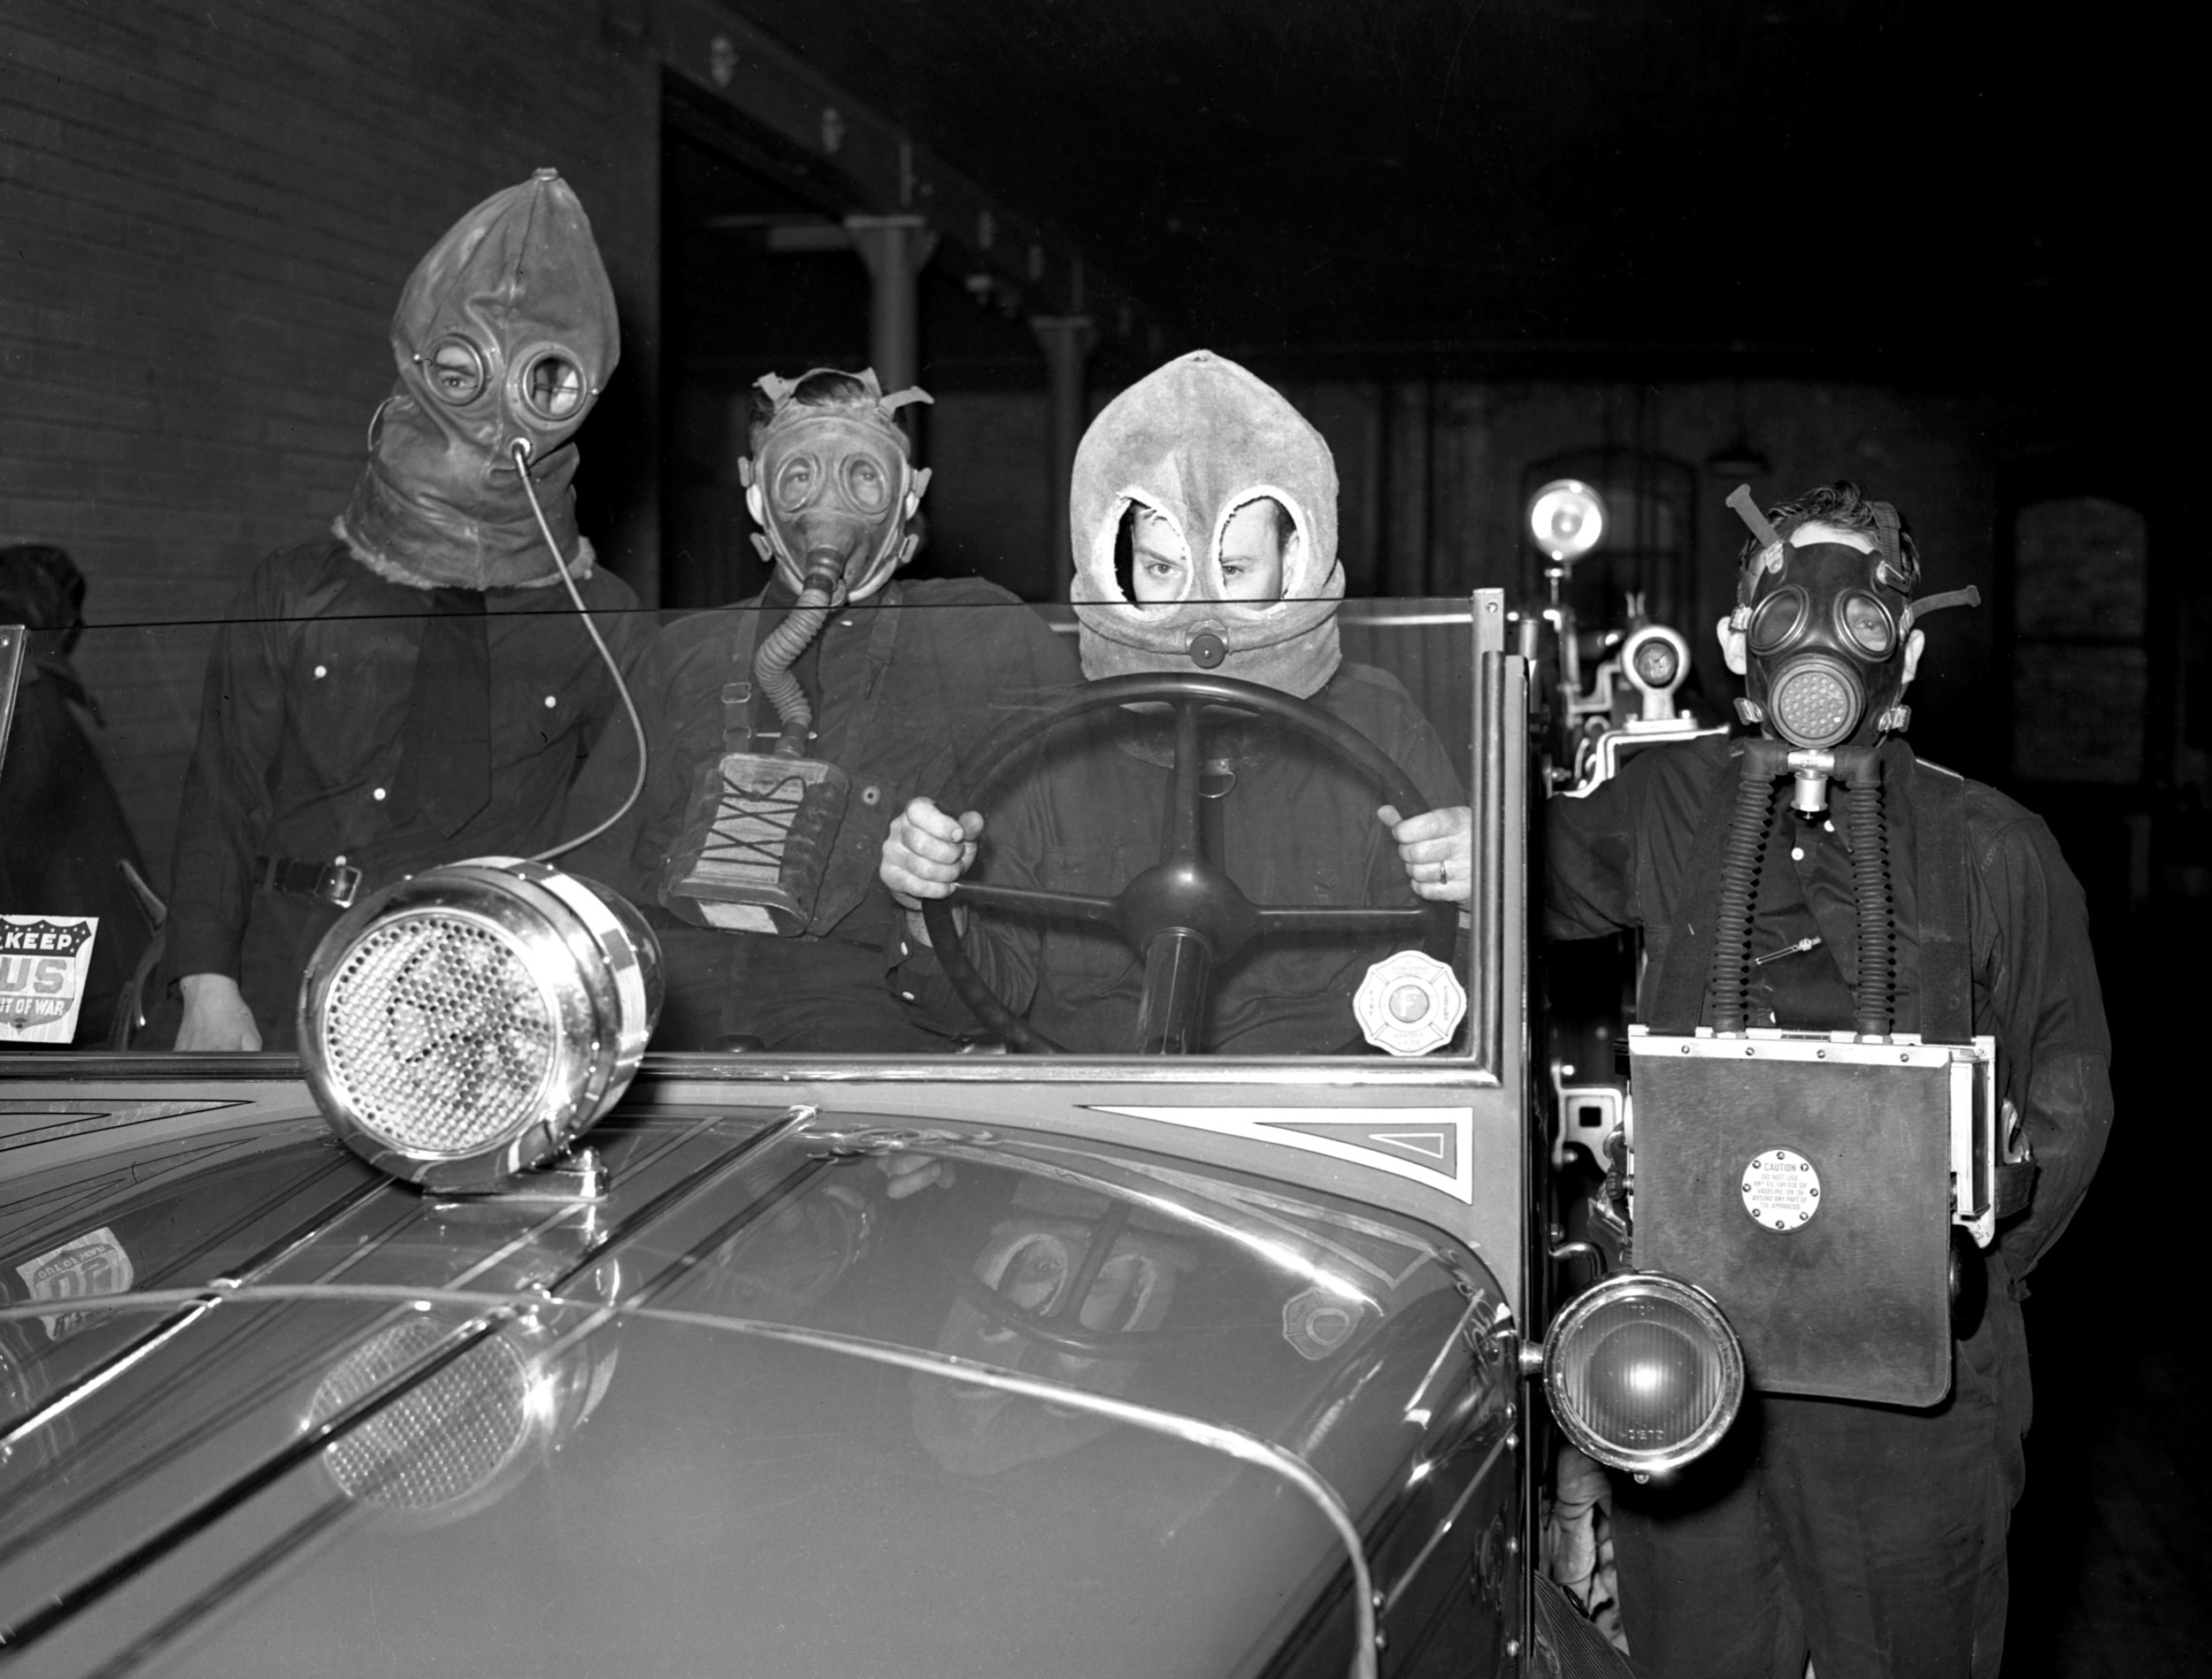 Firemen with masks, March 5, 1940Springfield firefighters demonstrate the evolution of the gas mask. The masks were discovered among old equipment in the city'sNo. 1 engine house and modeled by, from left,  J. W. Franklin,  wearing a 1914 asbestos model, Al Summers with a 1916 leather mask, Clarke Earley with a 1924 filter type and James Hamilton with the new oxygen type.